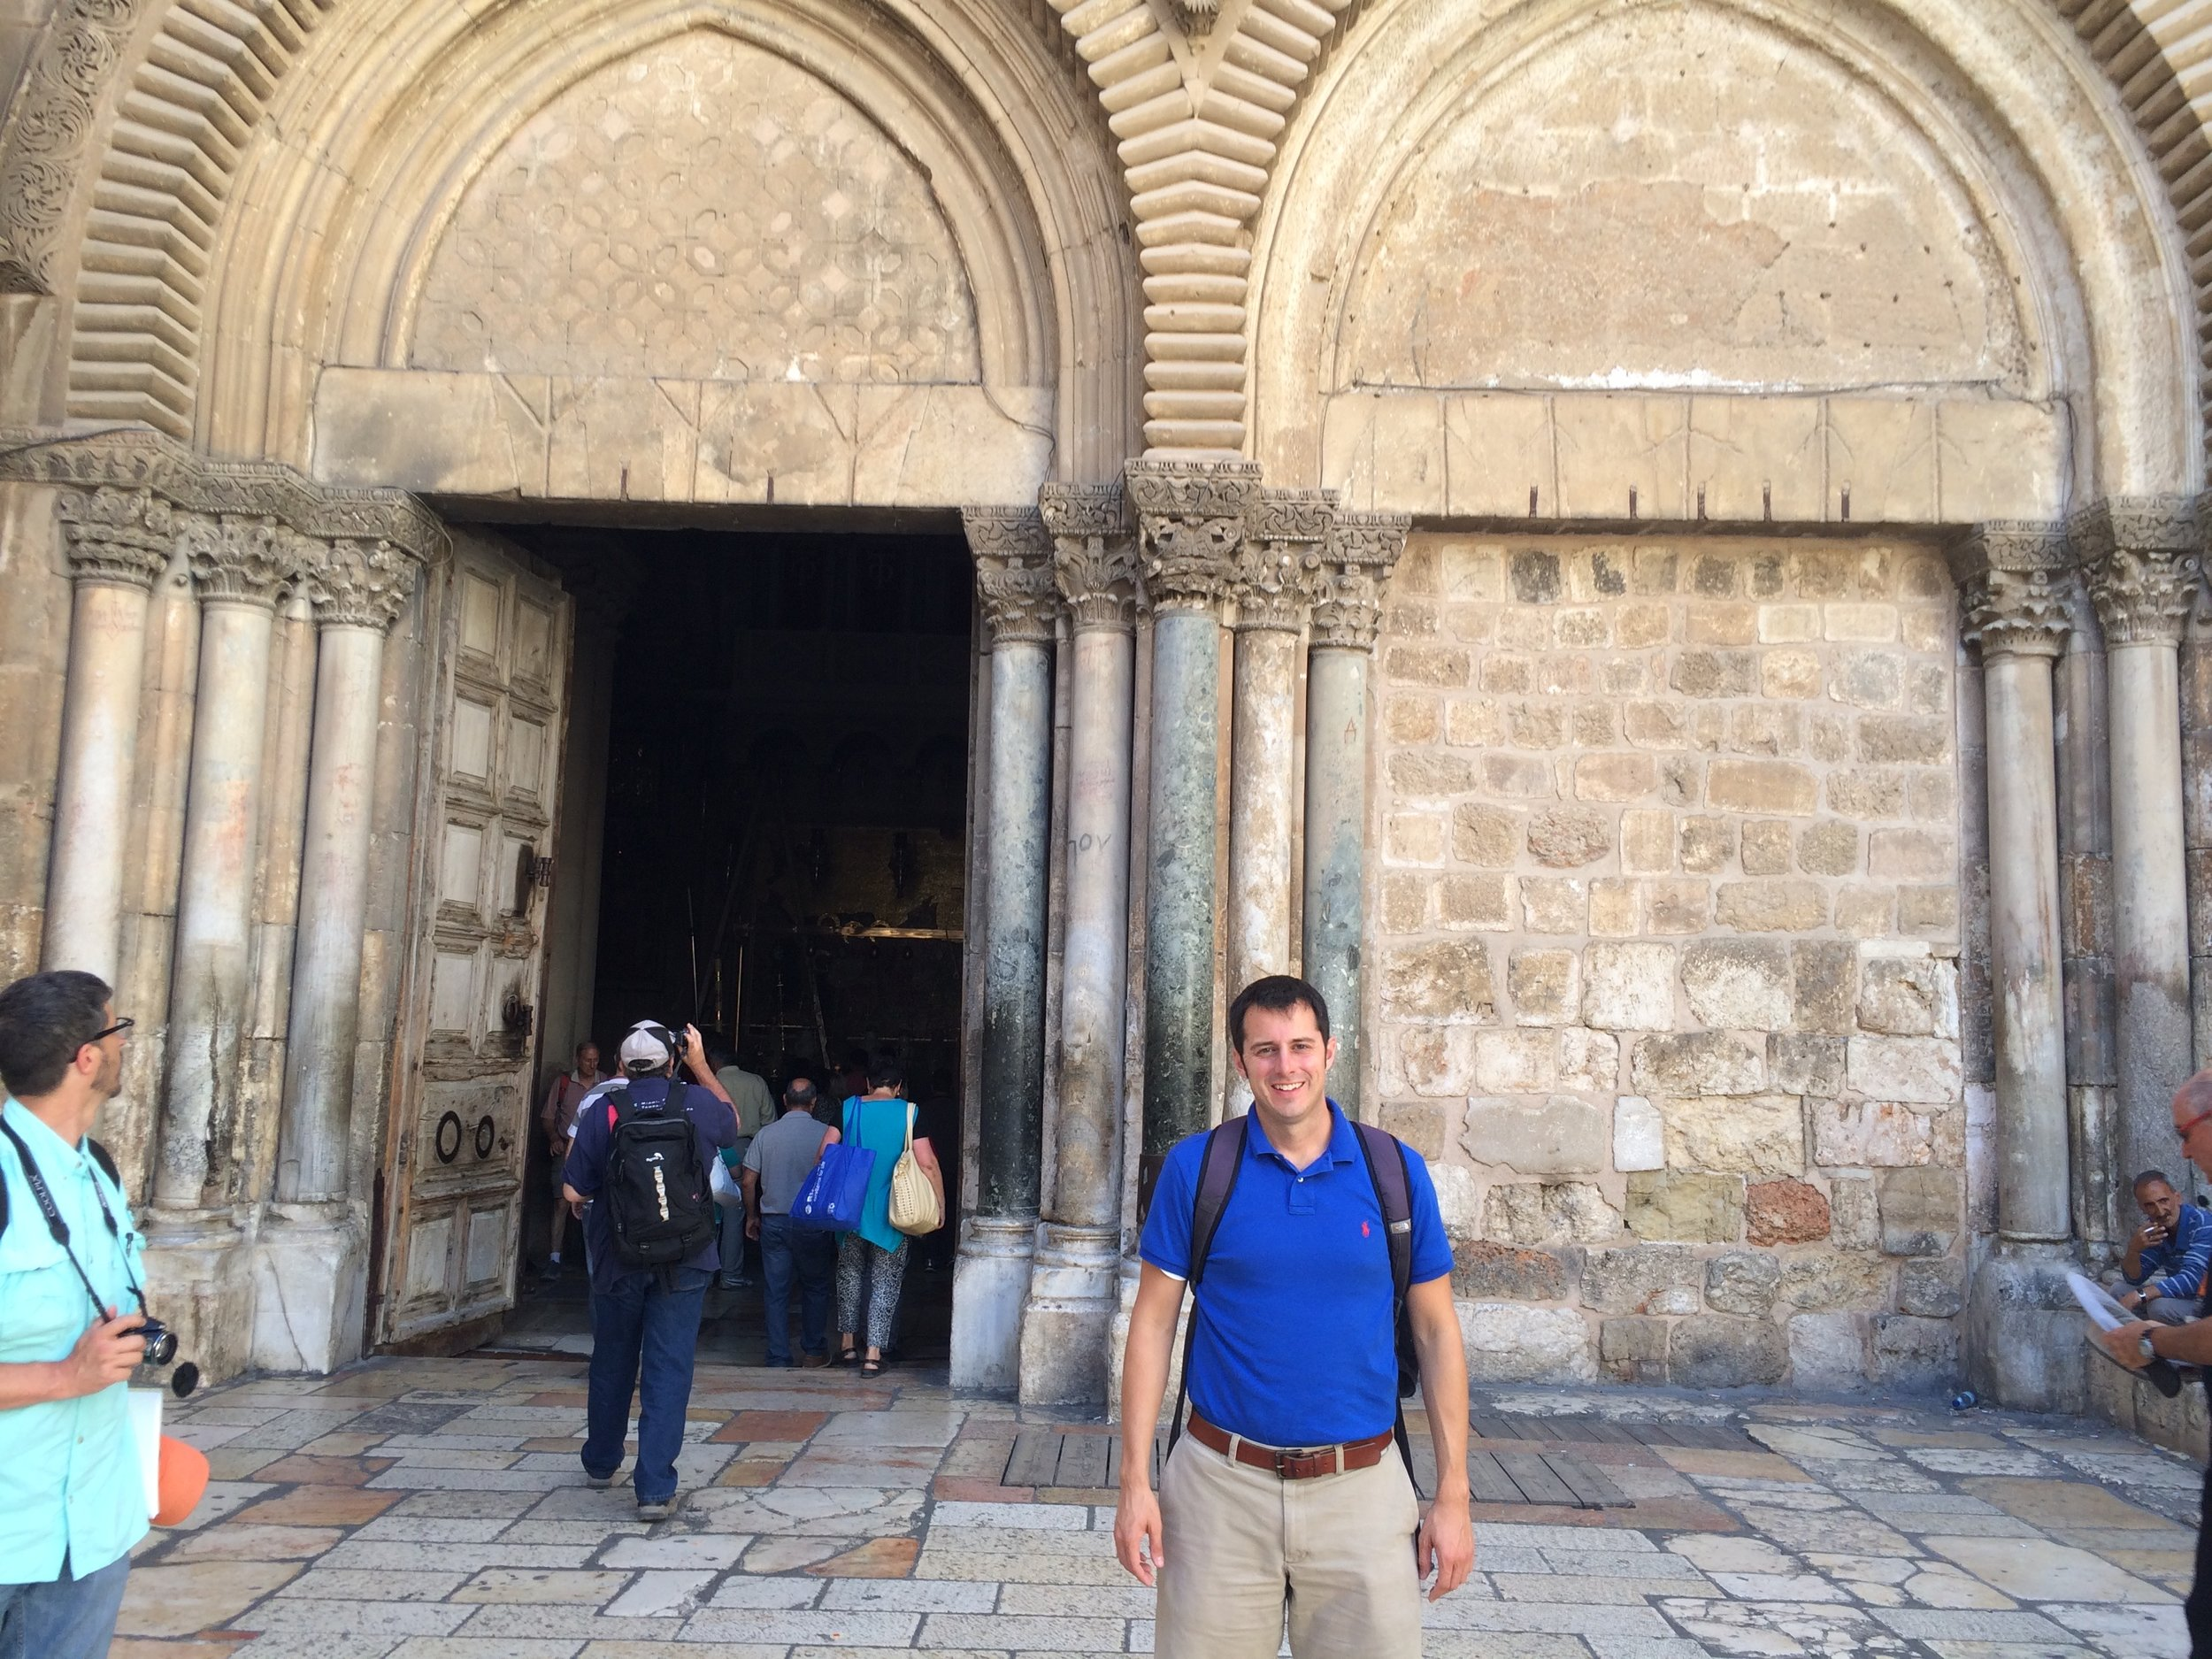 Here I am at the Church of the Holy Sepulchre, in Jerusalem. This is a church that has been built on the place where tradition holds that Jesus was crucified. This is the place where many think Jesus gave His blood for the Church.